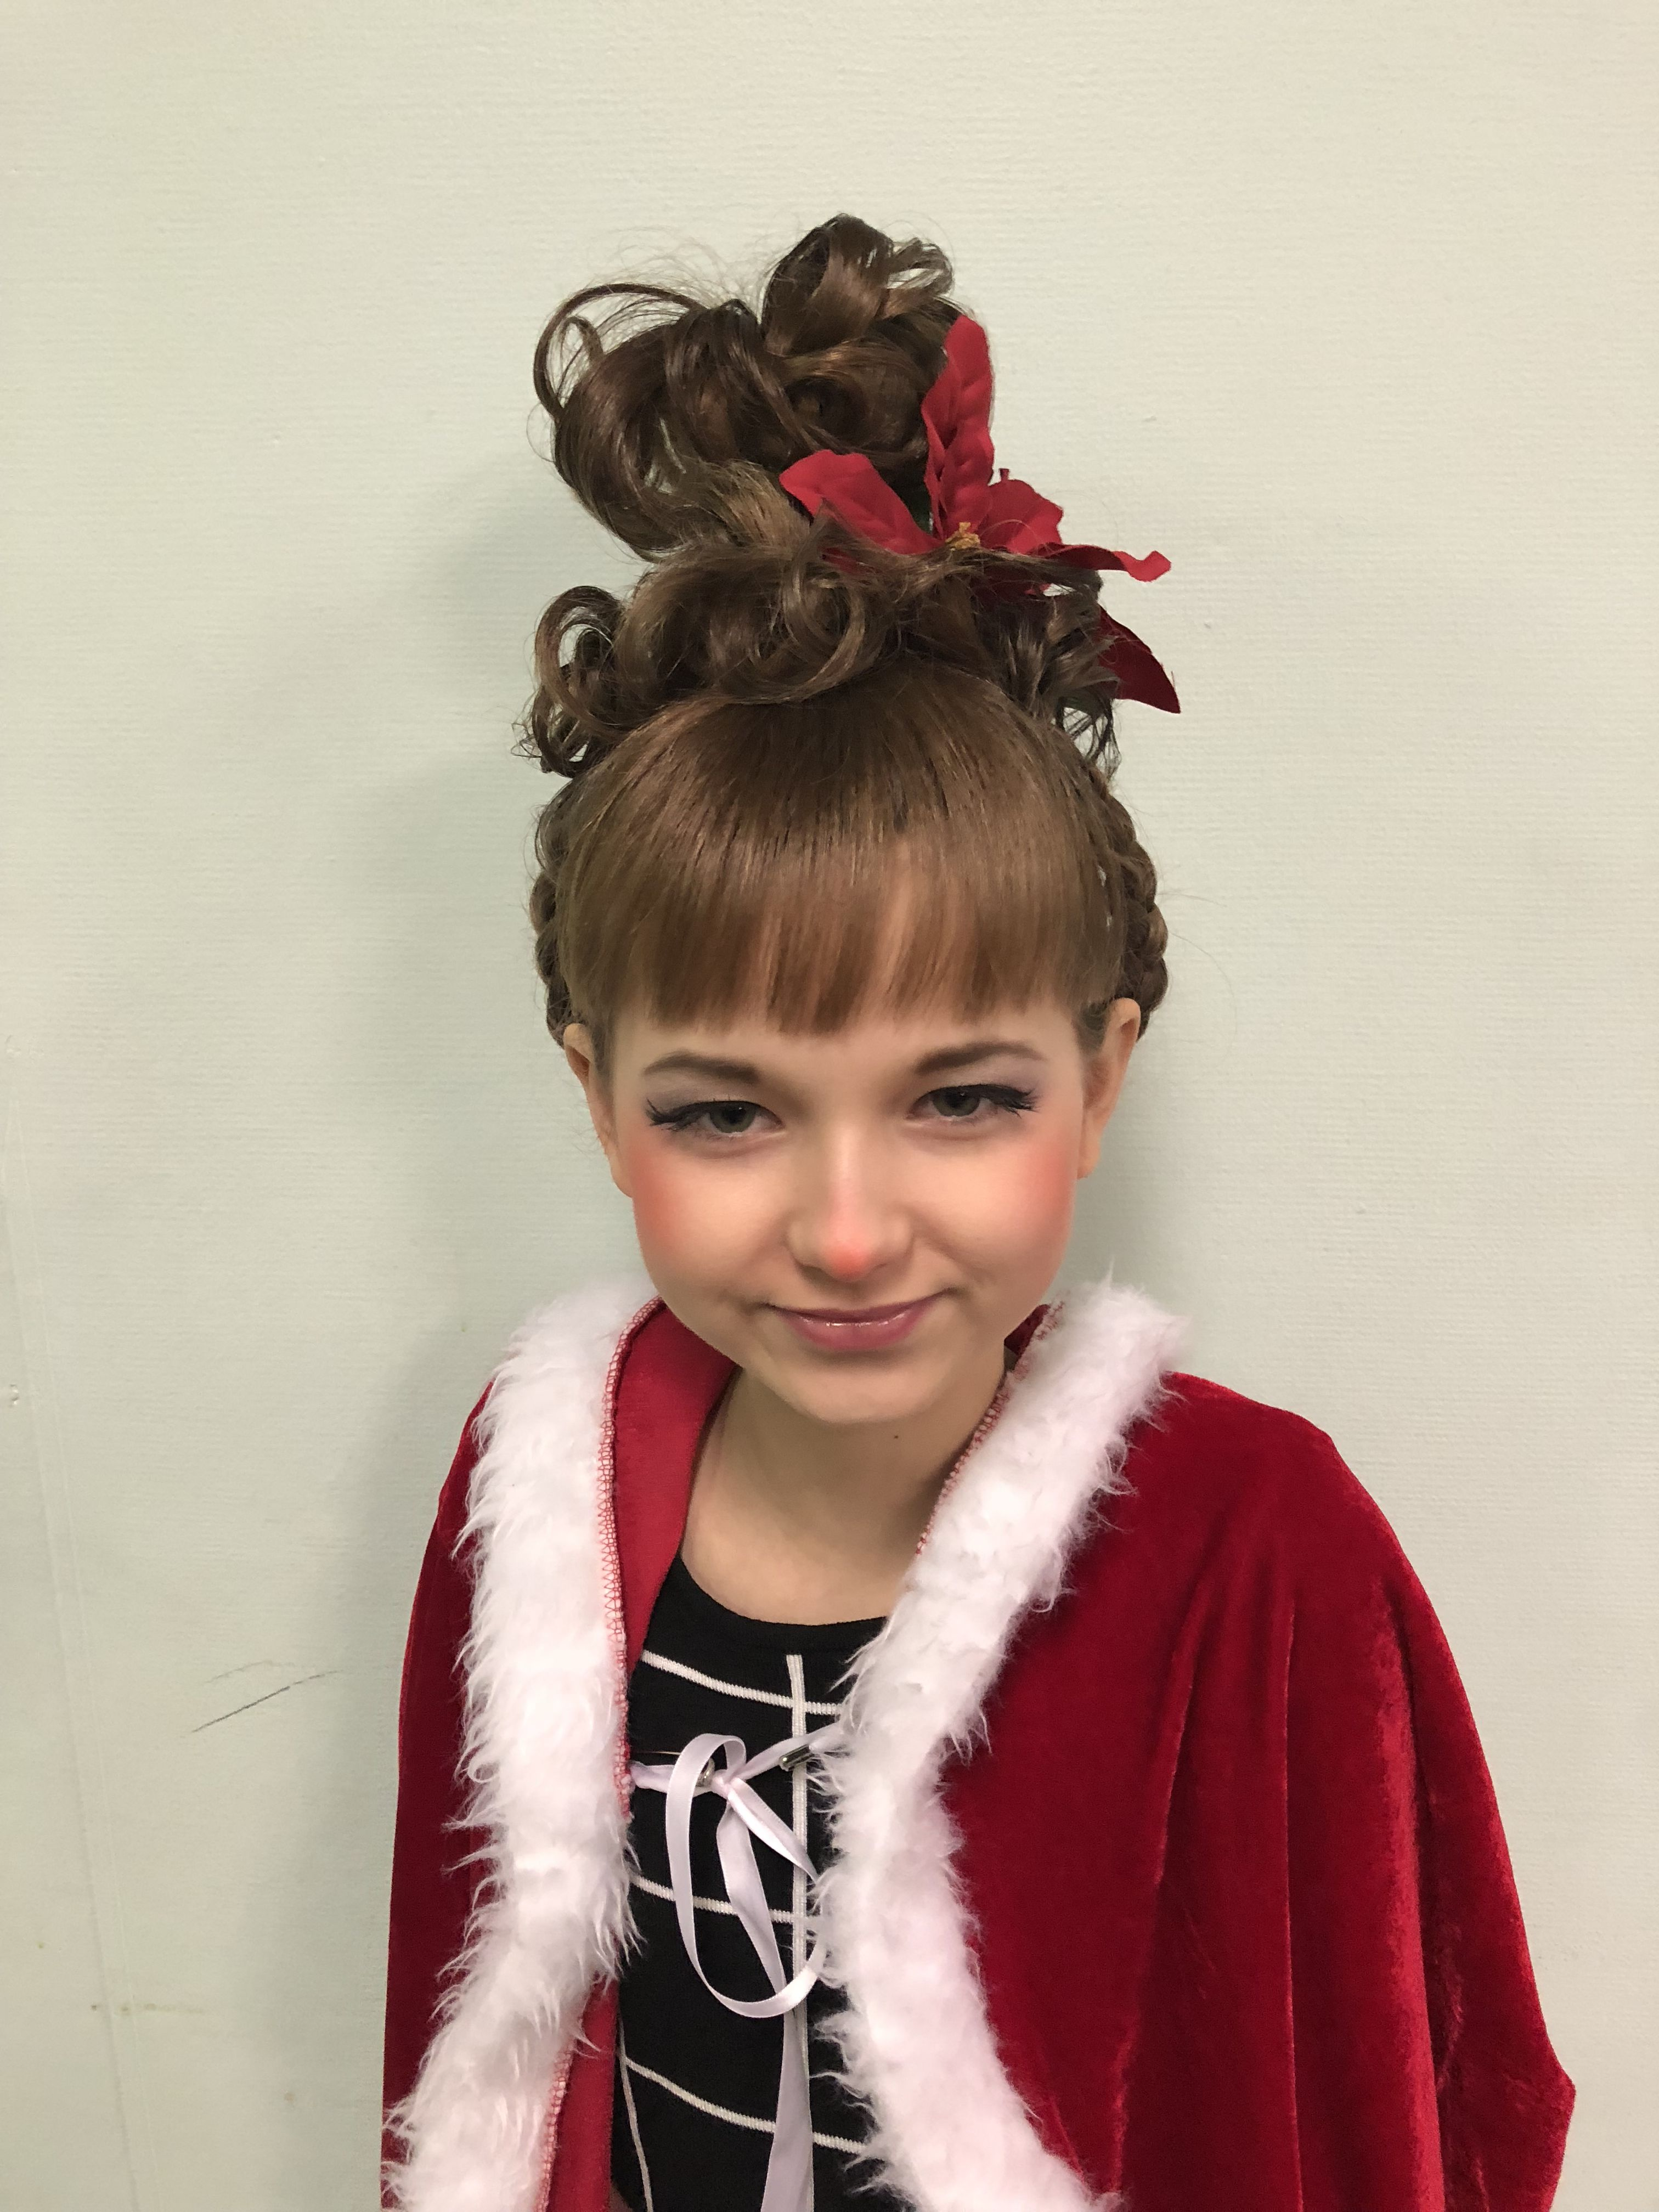 Cindy Lou Whoville Grinch Costume Play Halloween